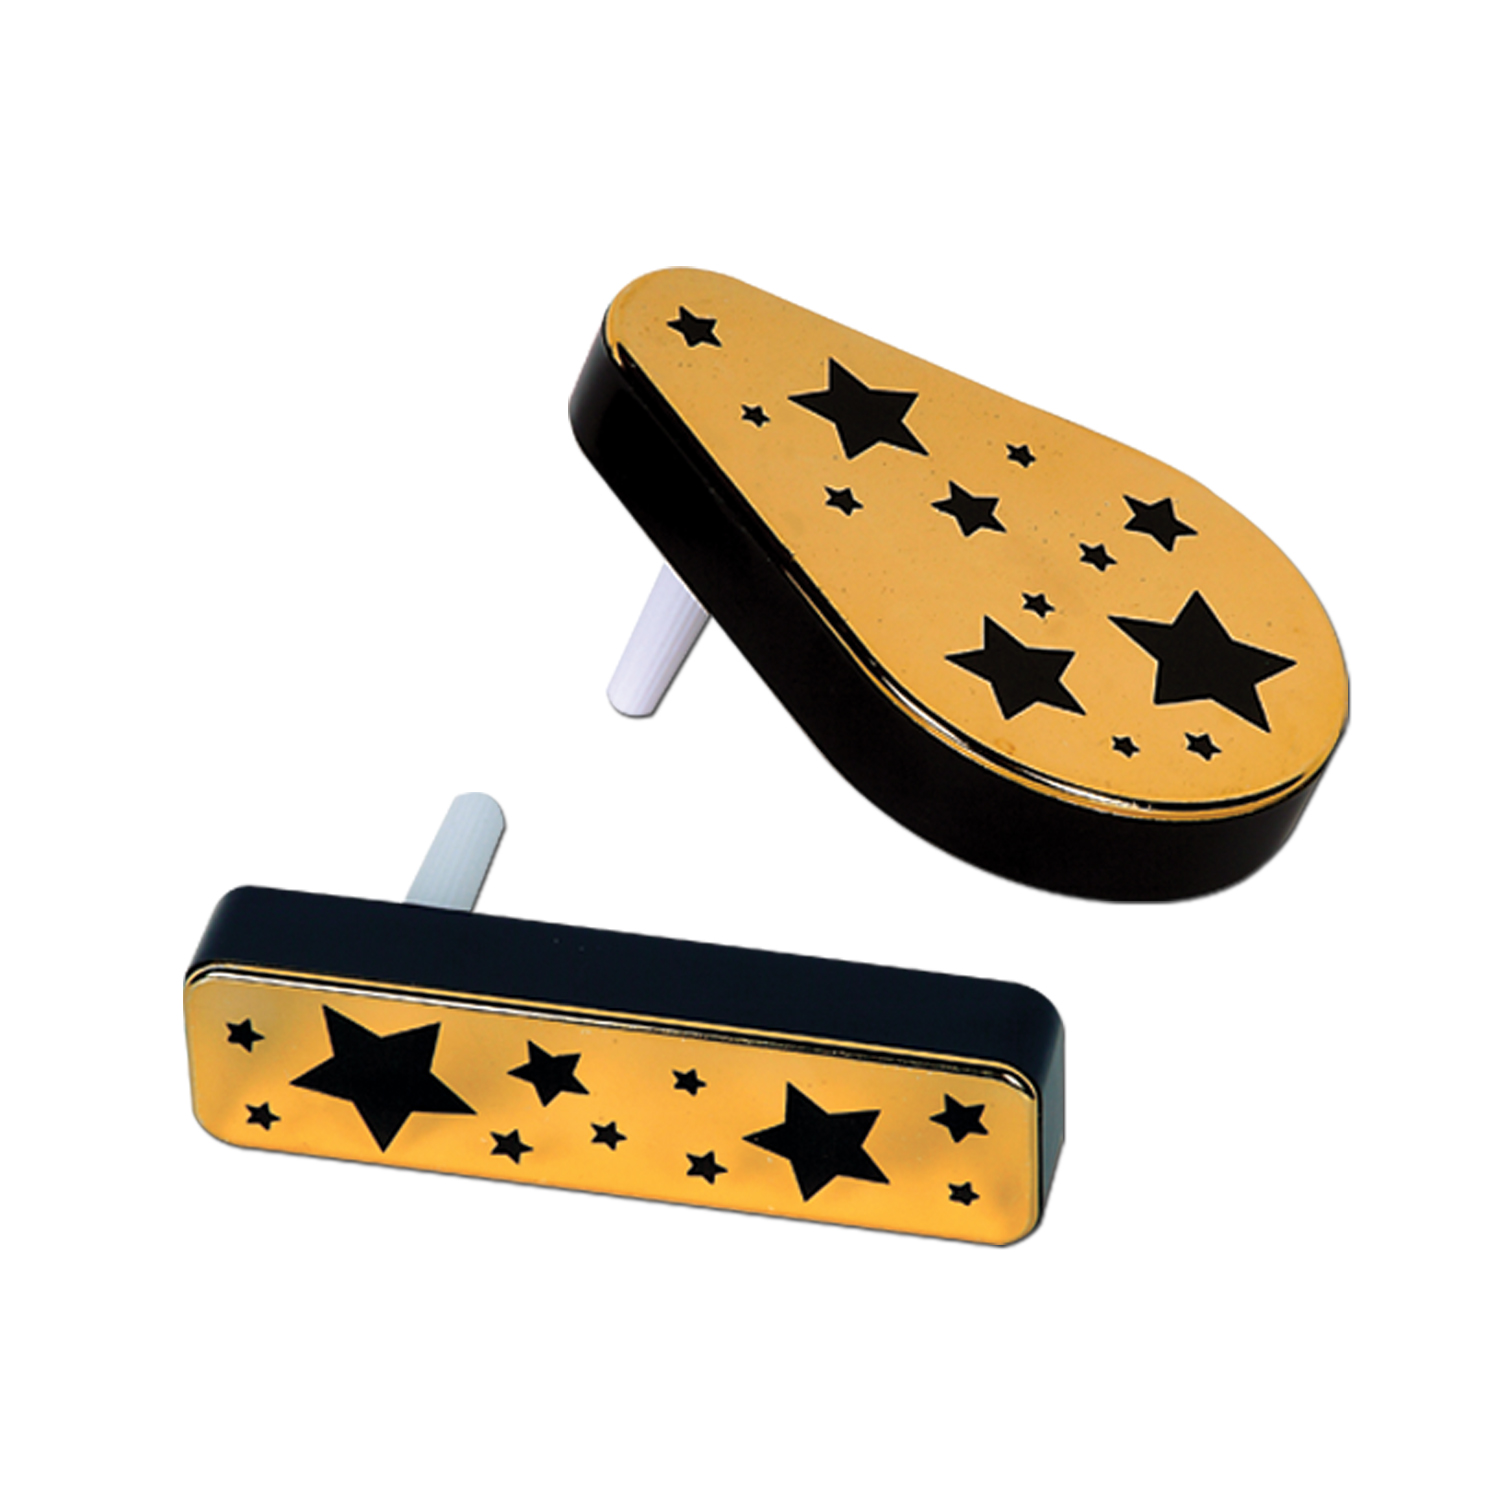 Plastic Metallic Noisemakers black & gold